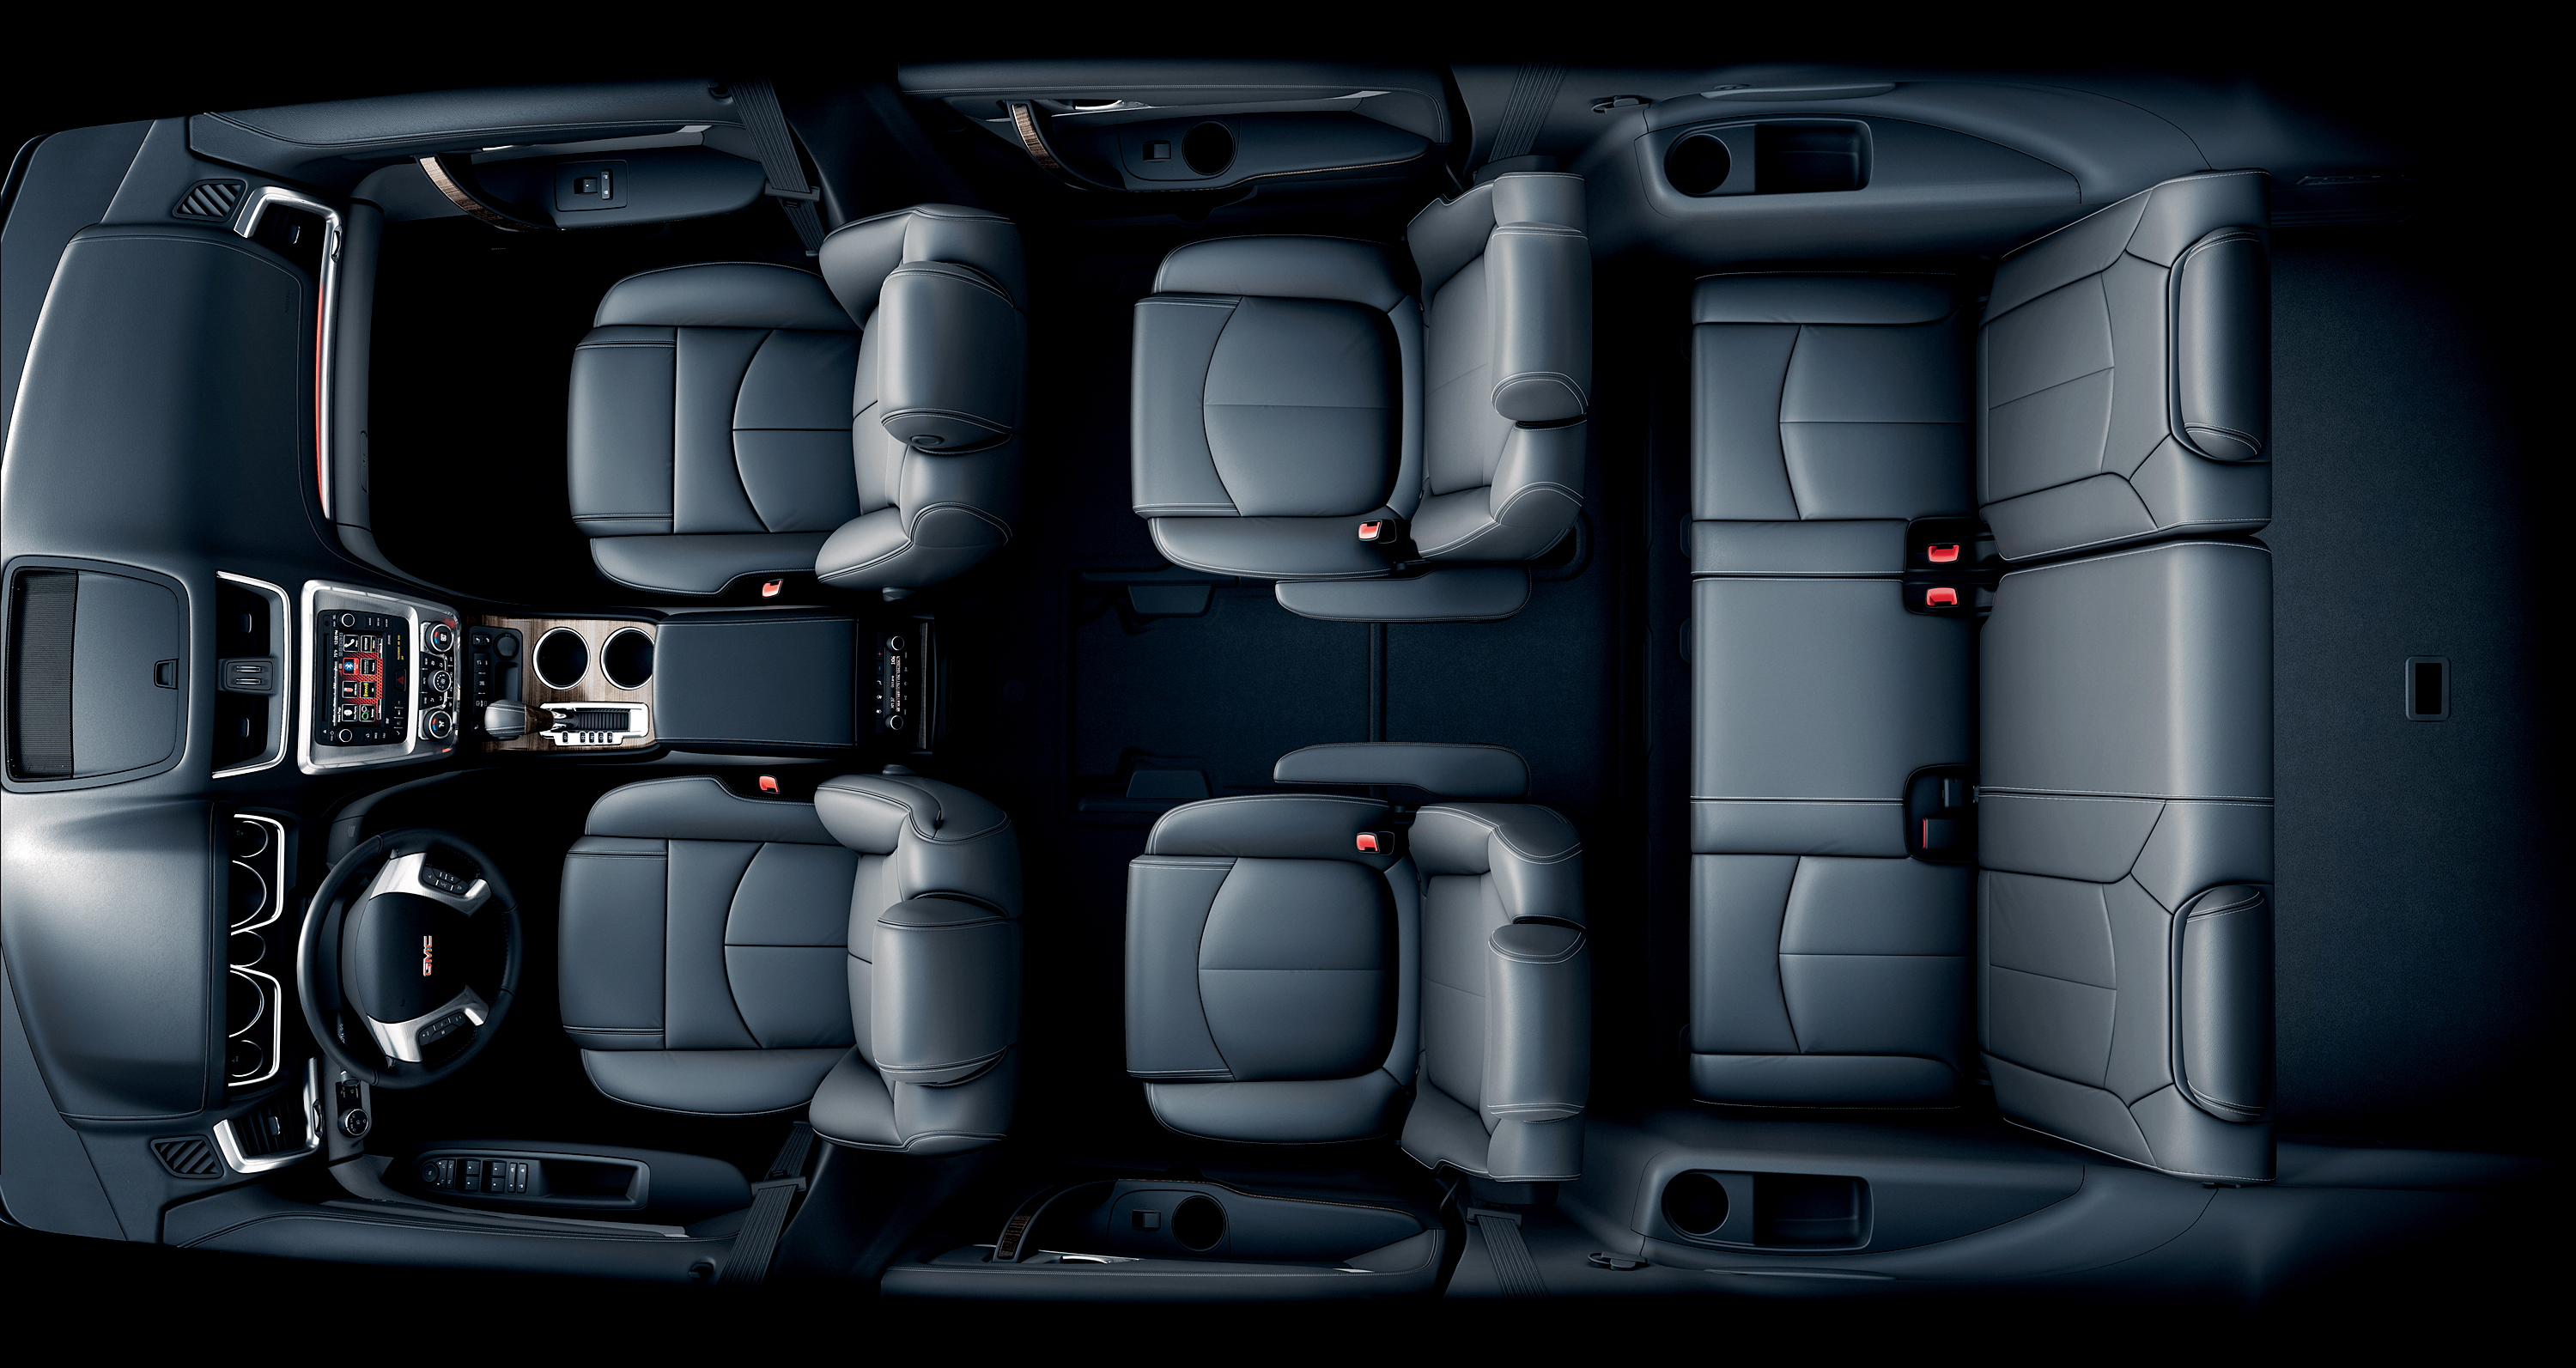 2008 Gmc Acadia Seat Wiring Diagram Libraries 2015 Trailer Pinout Pressroom United States Images2008 5